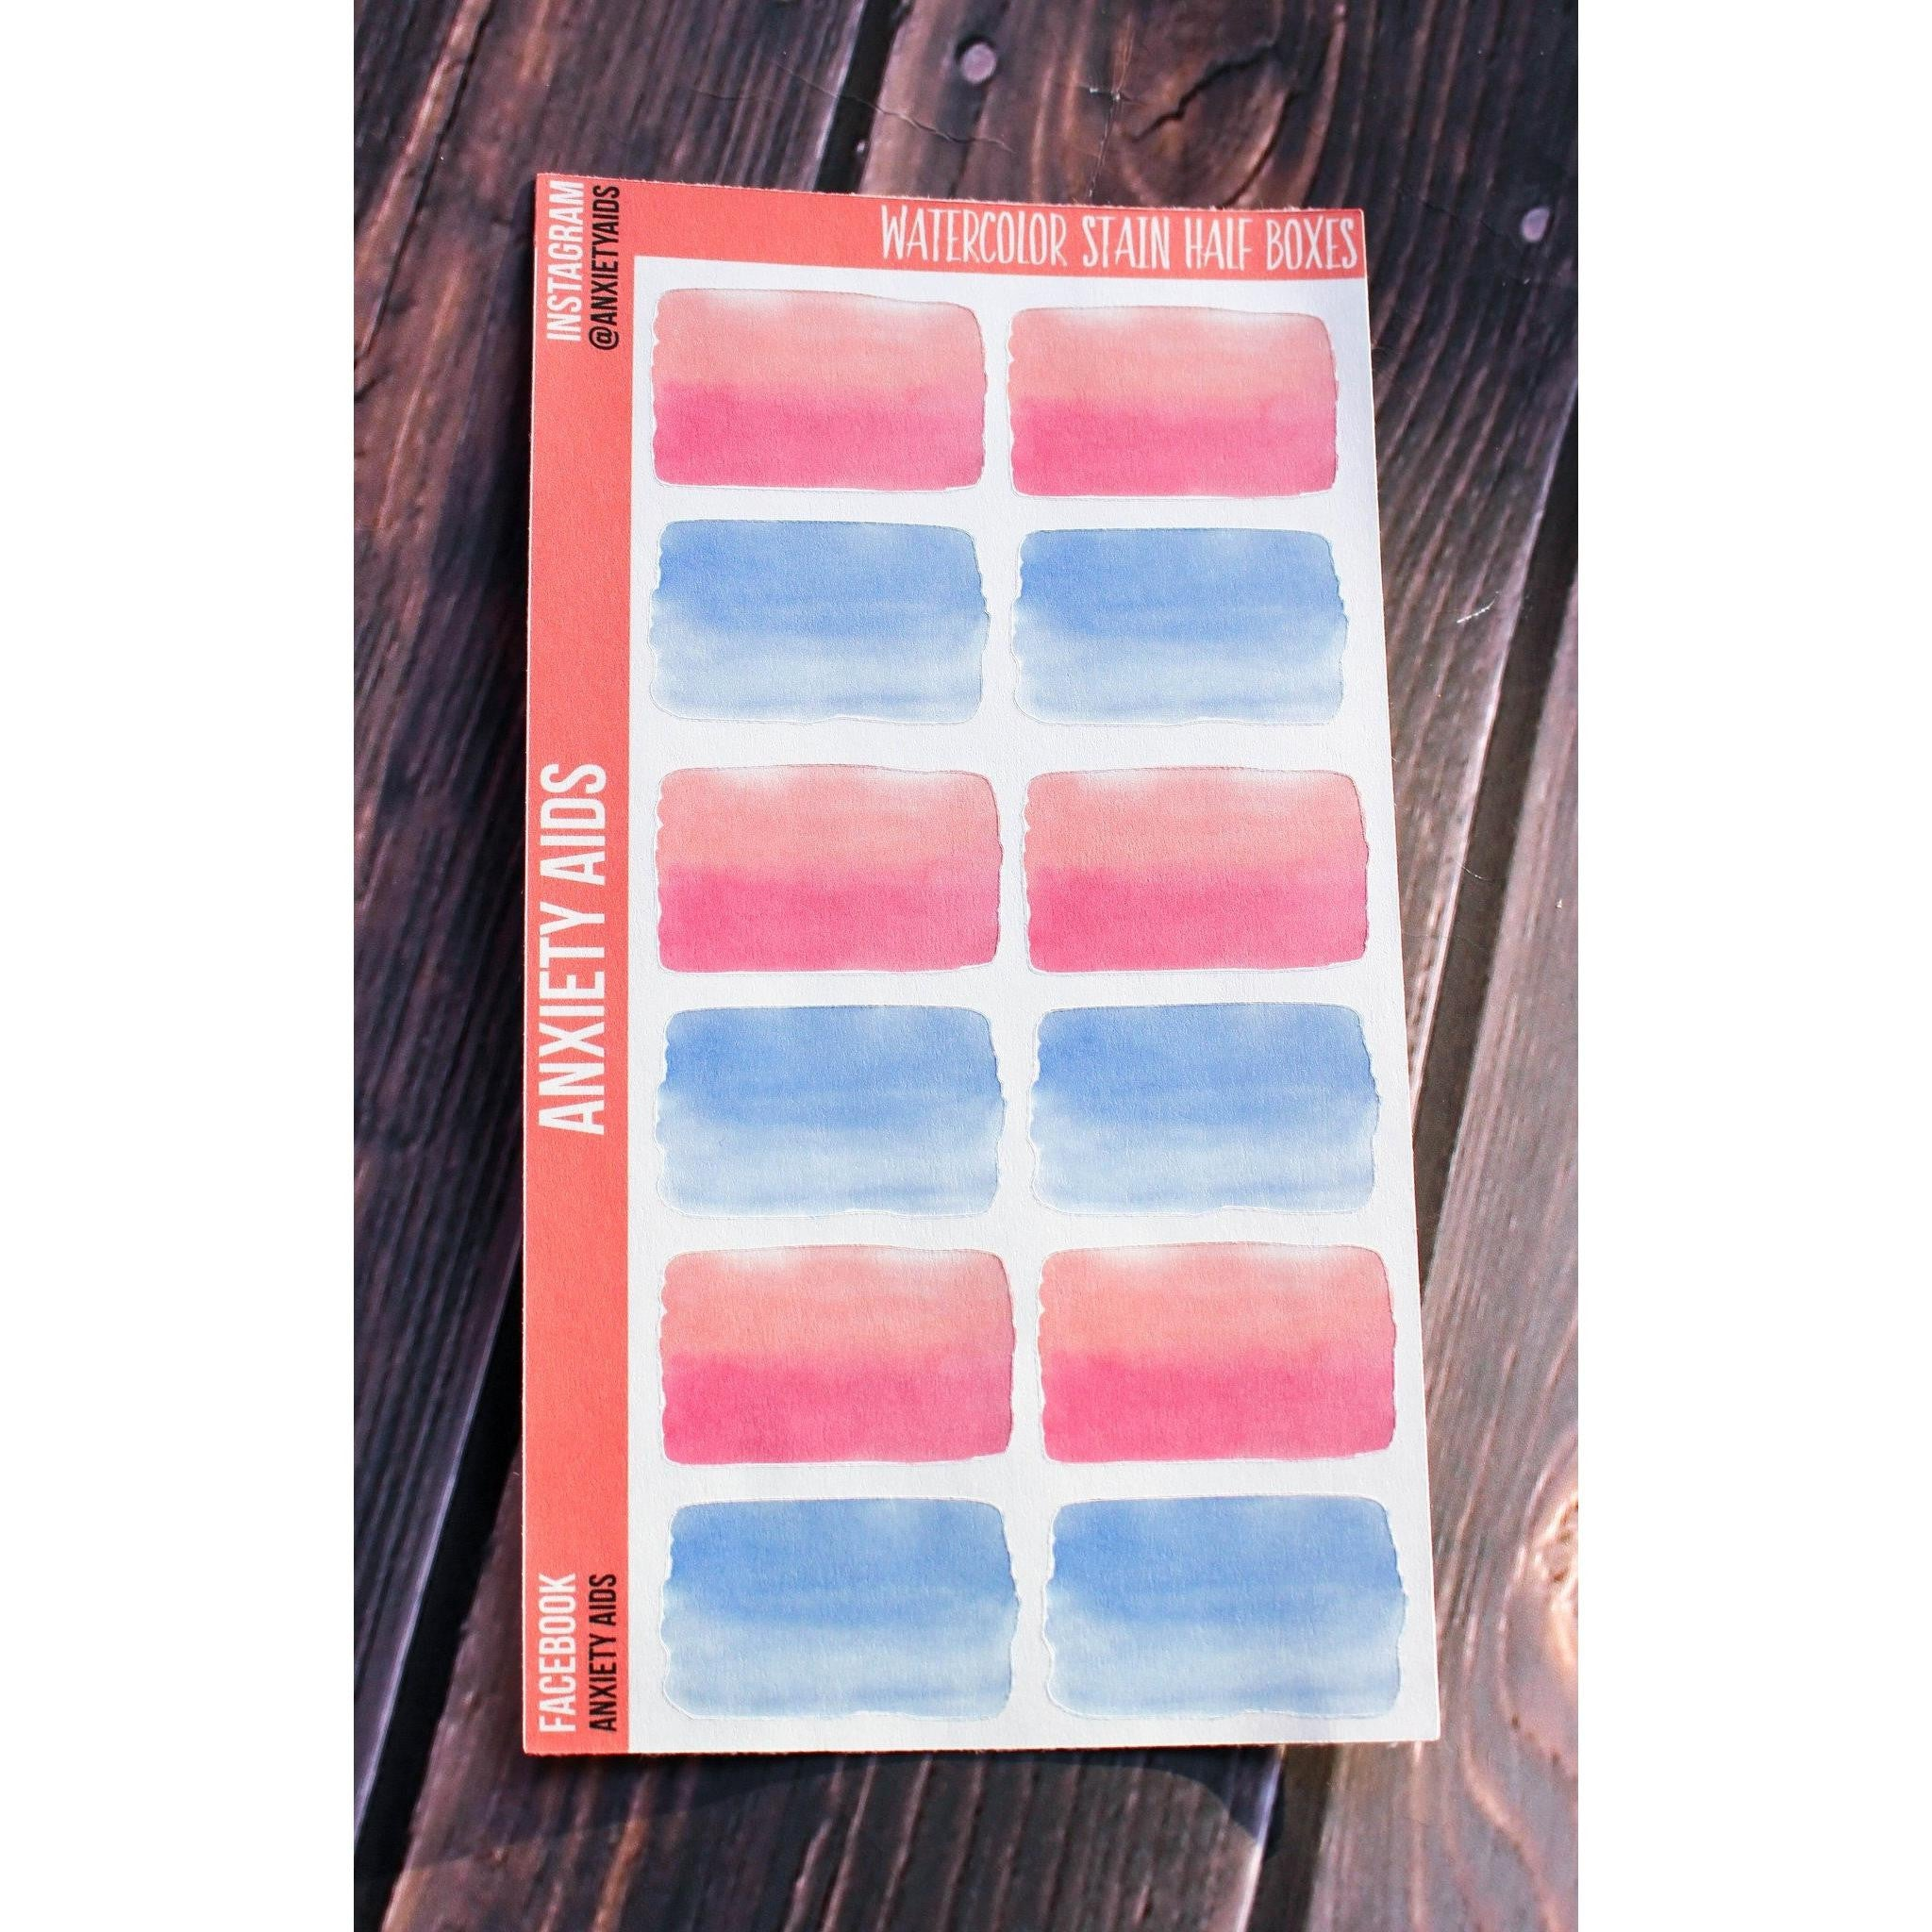 Watercolor Stain Half Box Stickers